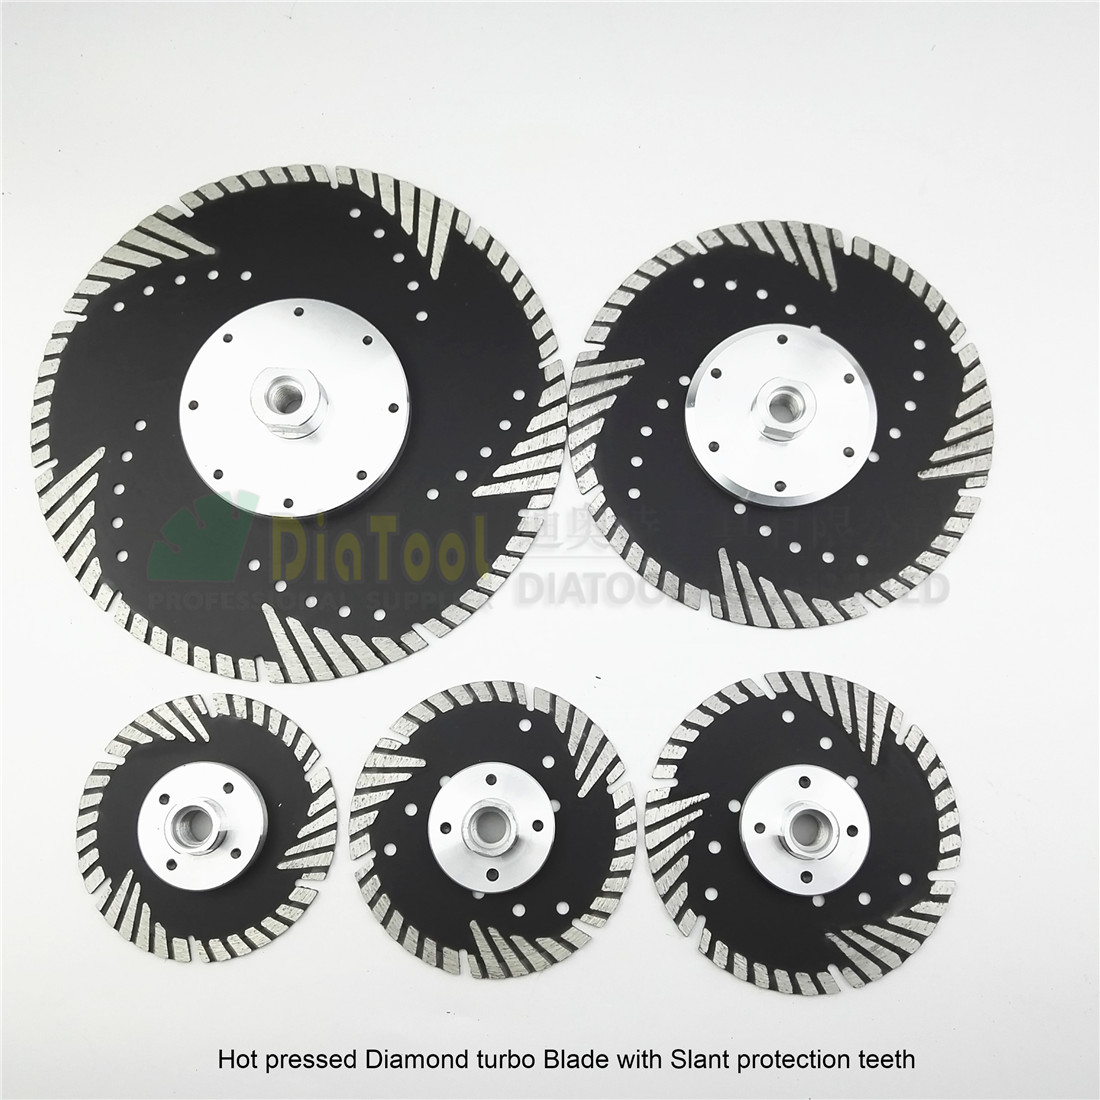 цена на DIATOOL Metal Bond Diamond Saw Blade With Slant protection teeth for stone concrete Masonry Diamond cutting discs